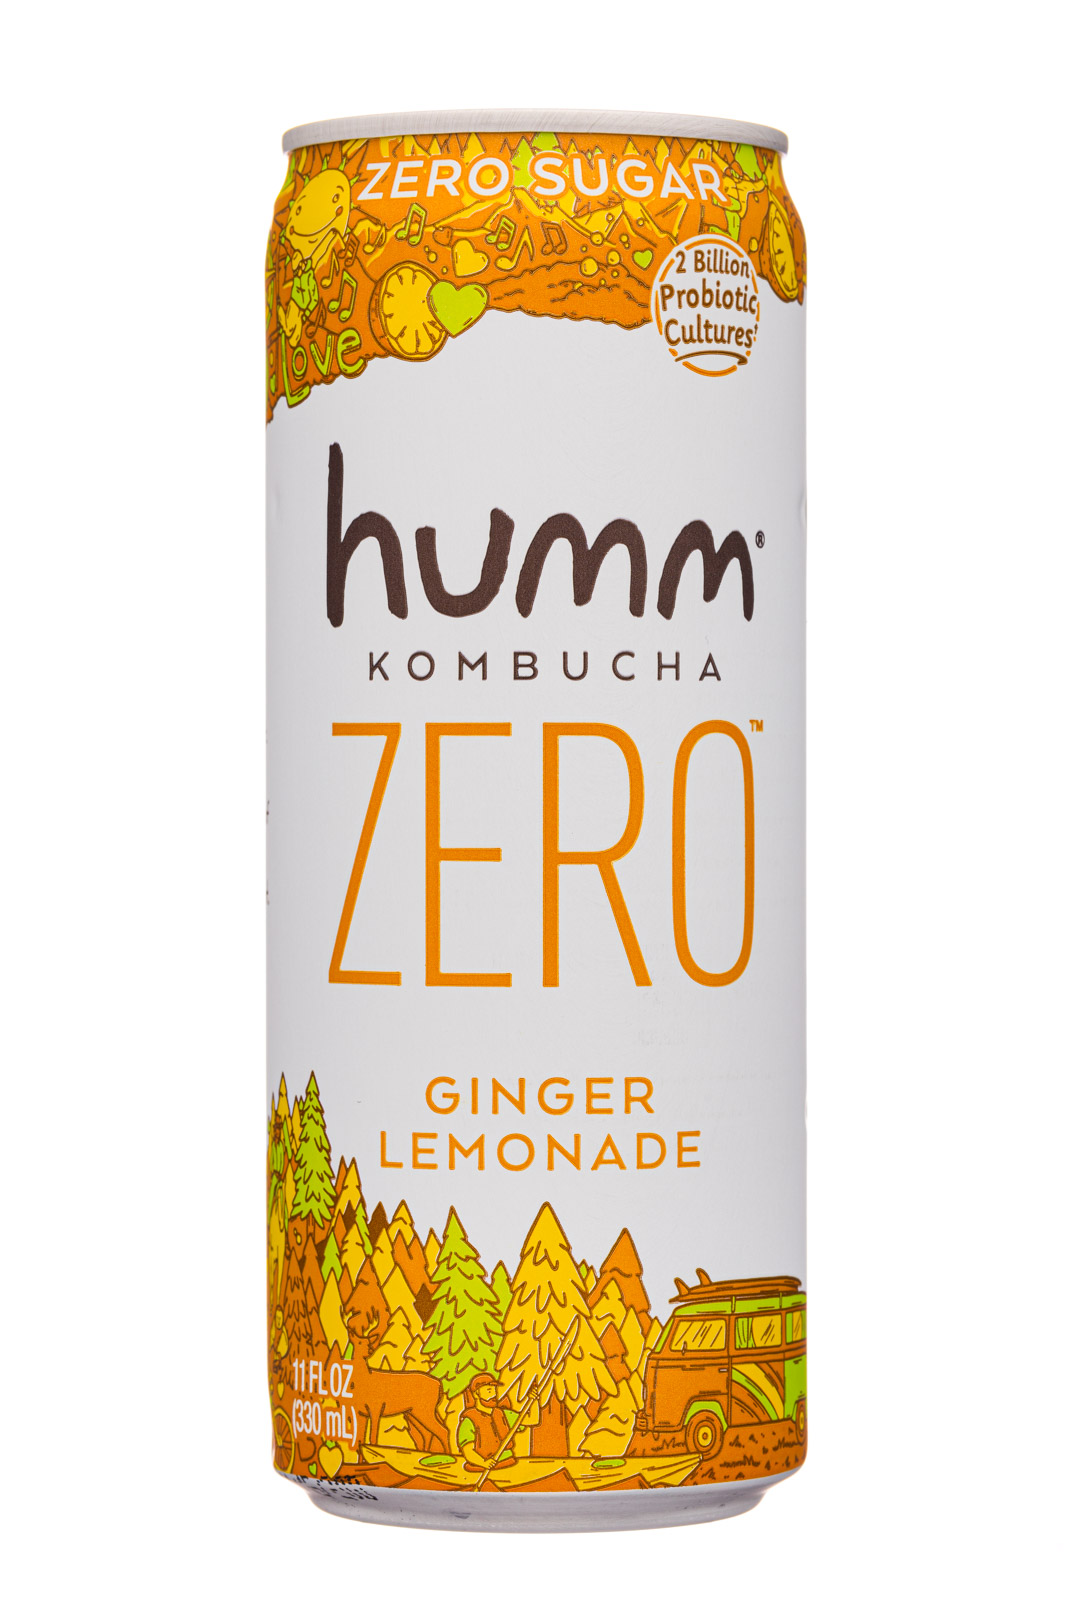 Humm Zero - Ginger Lemonade